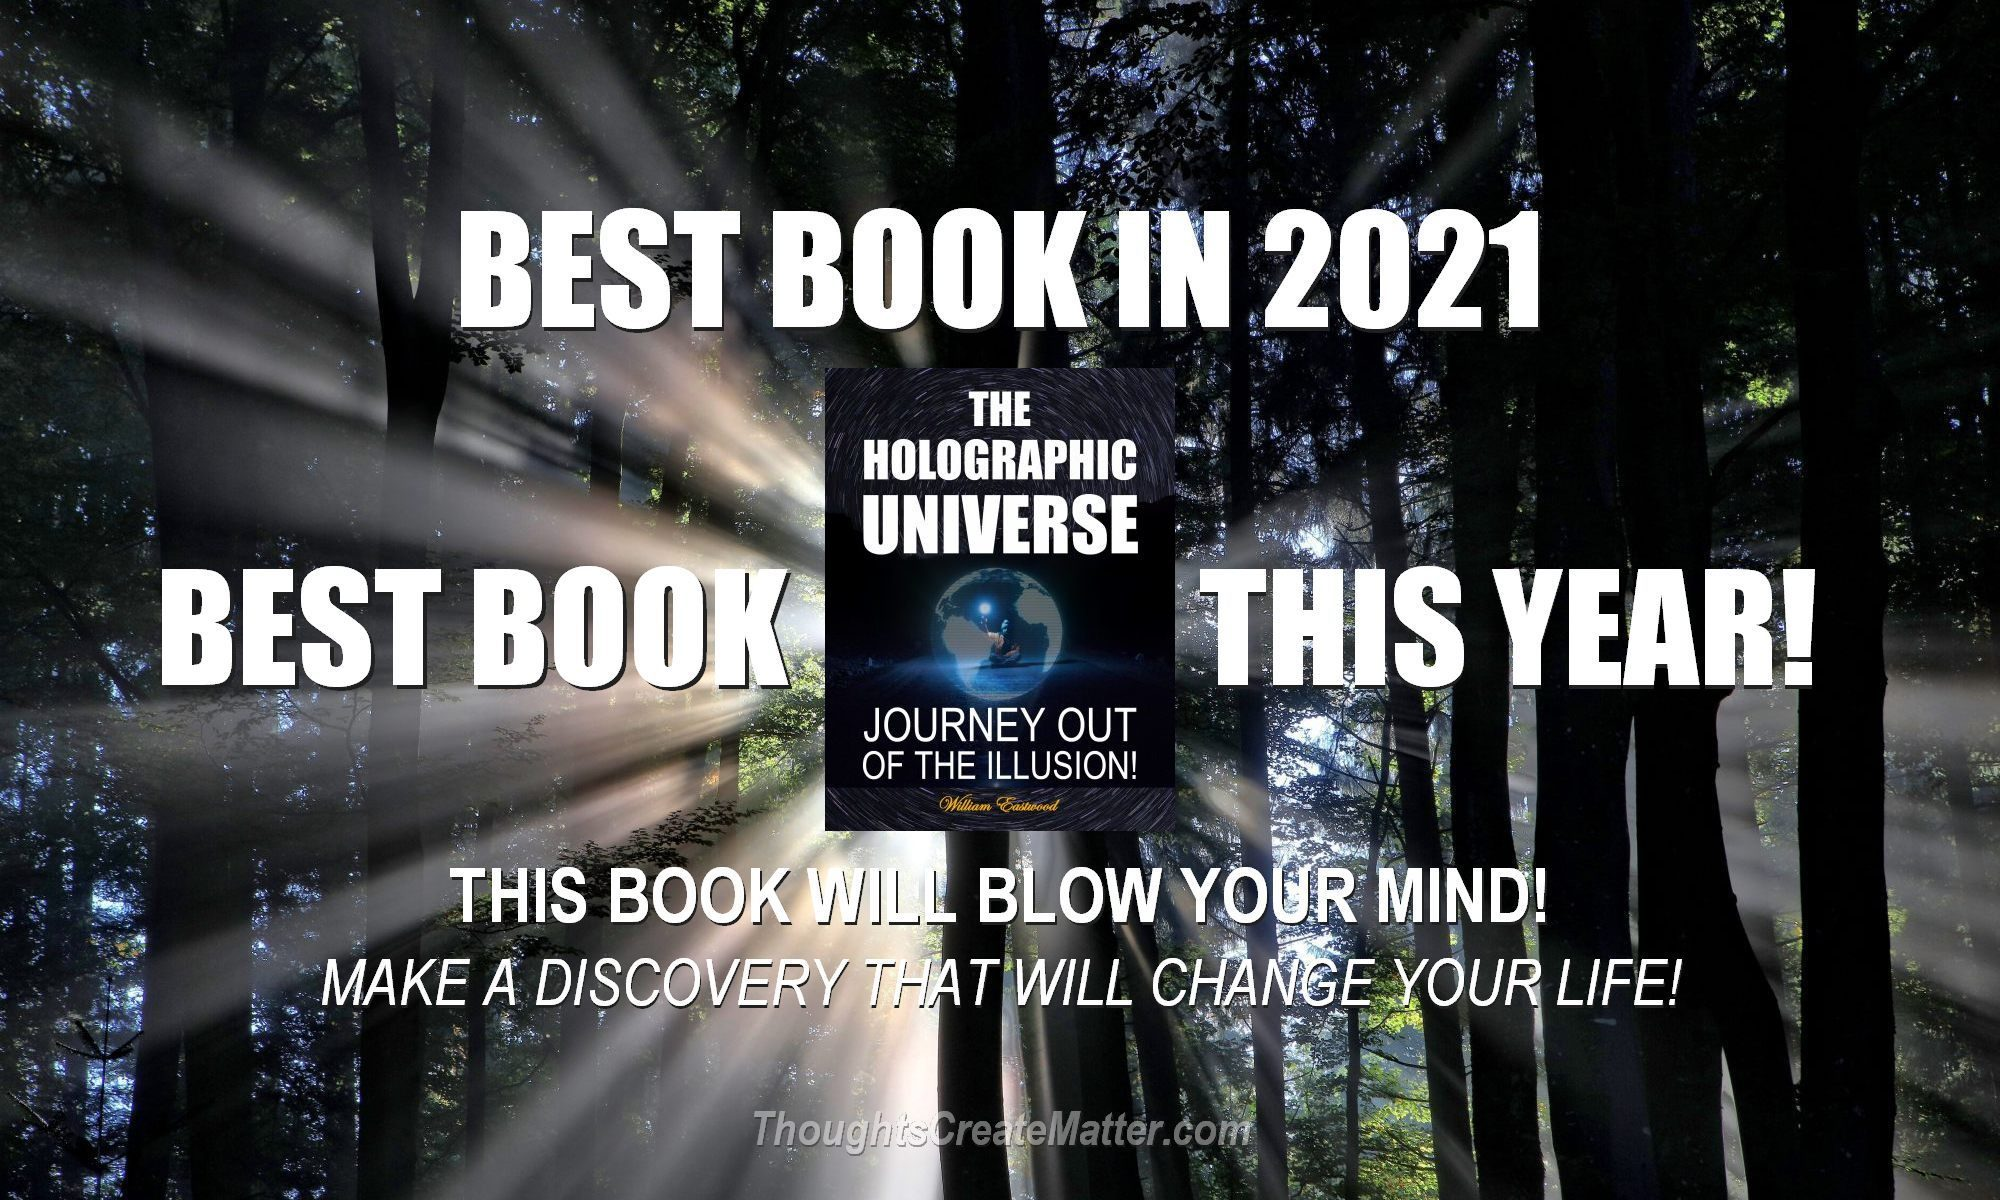 The holographic reality journey out of the illusion will allow you to stay safe and more.